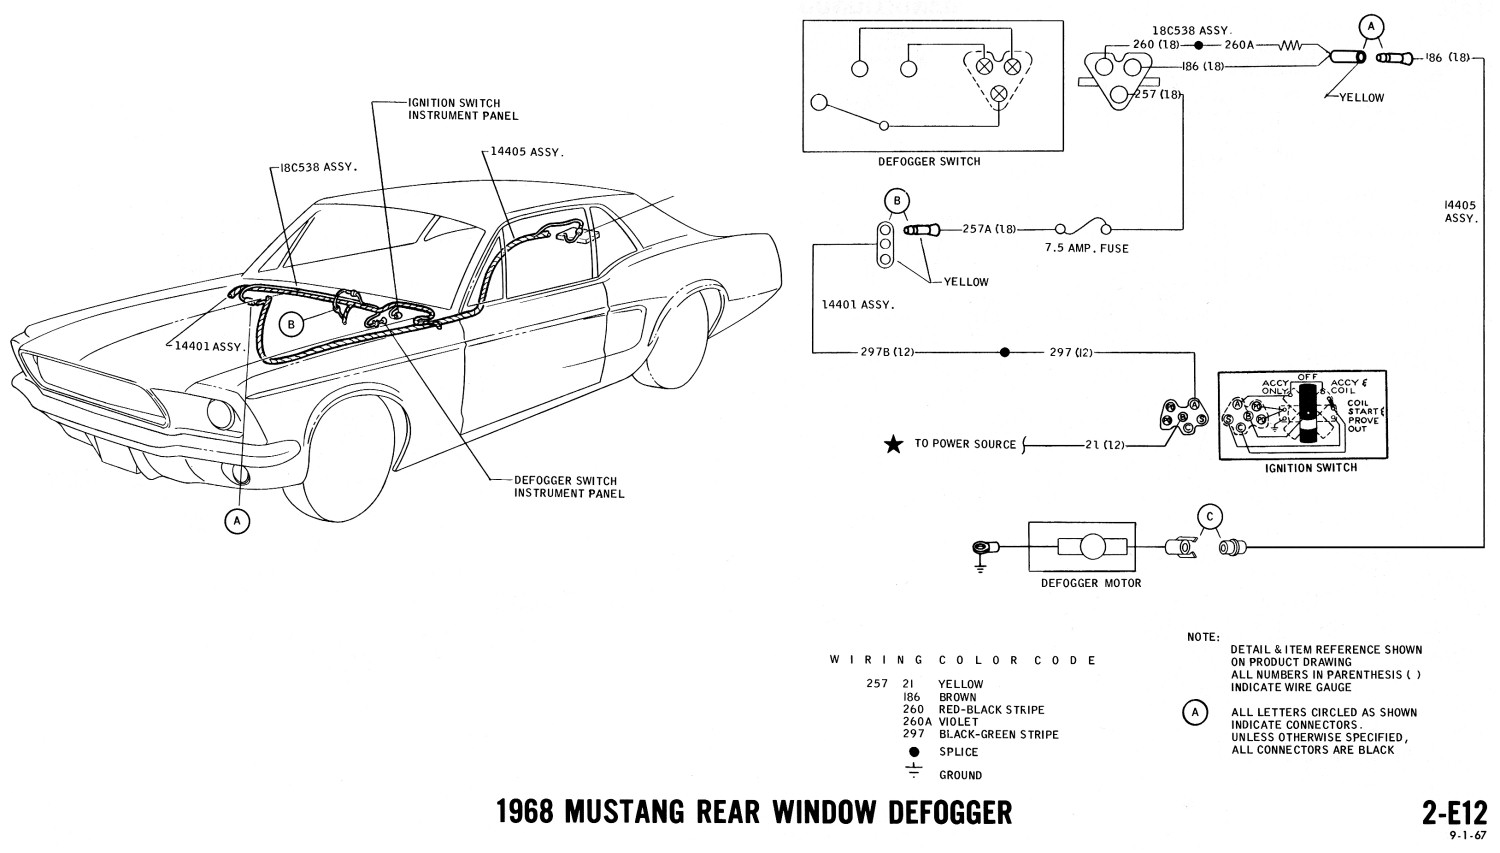 1968 mustang wiring diagrams and vacuum schematics average joe1968 mustang wiring diagram rear window defrost